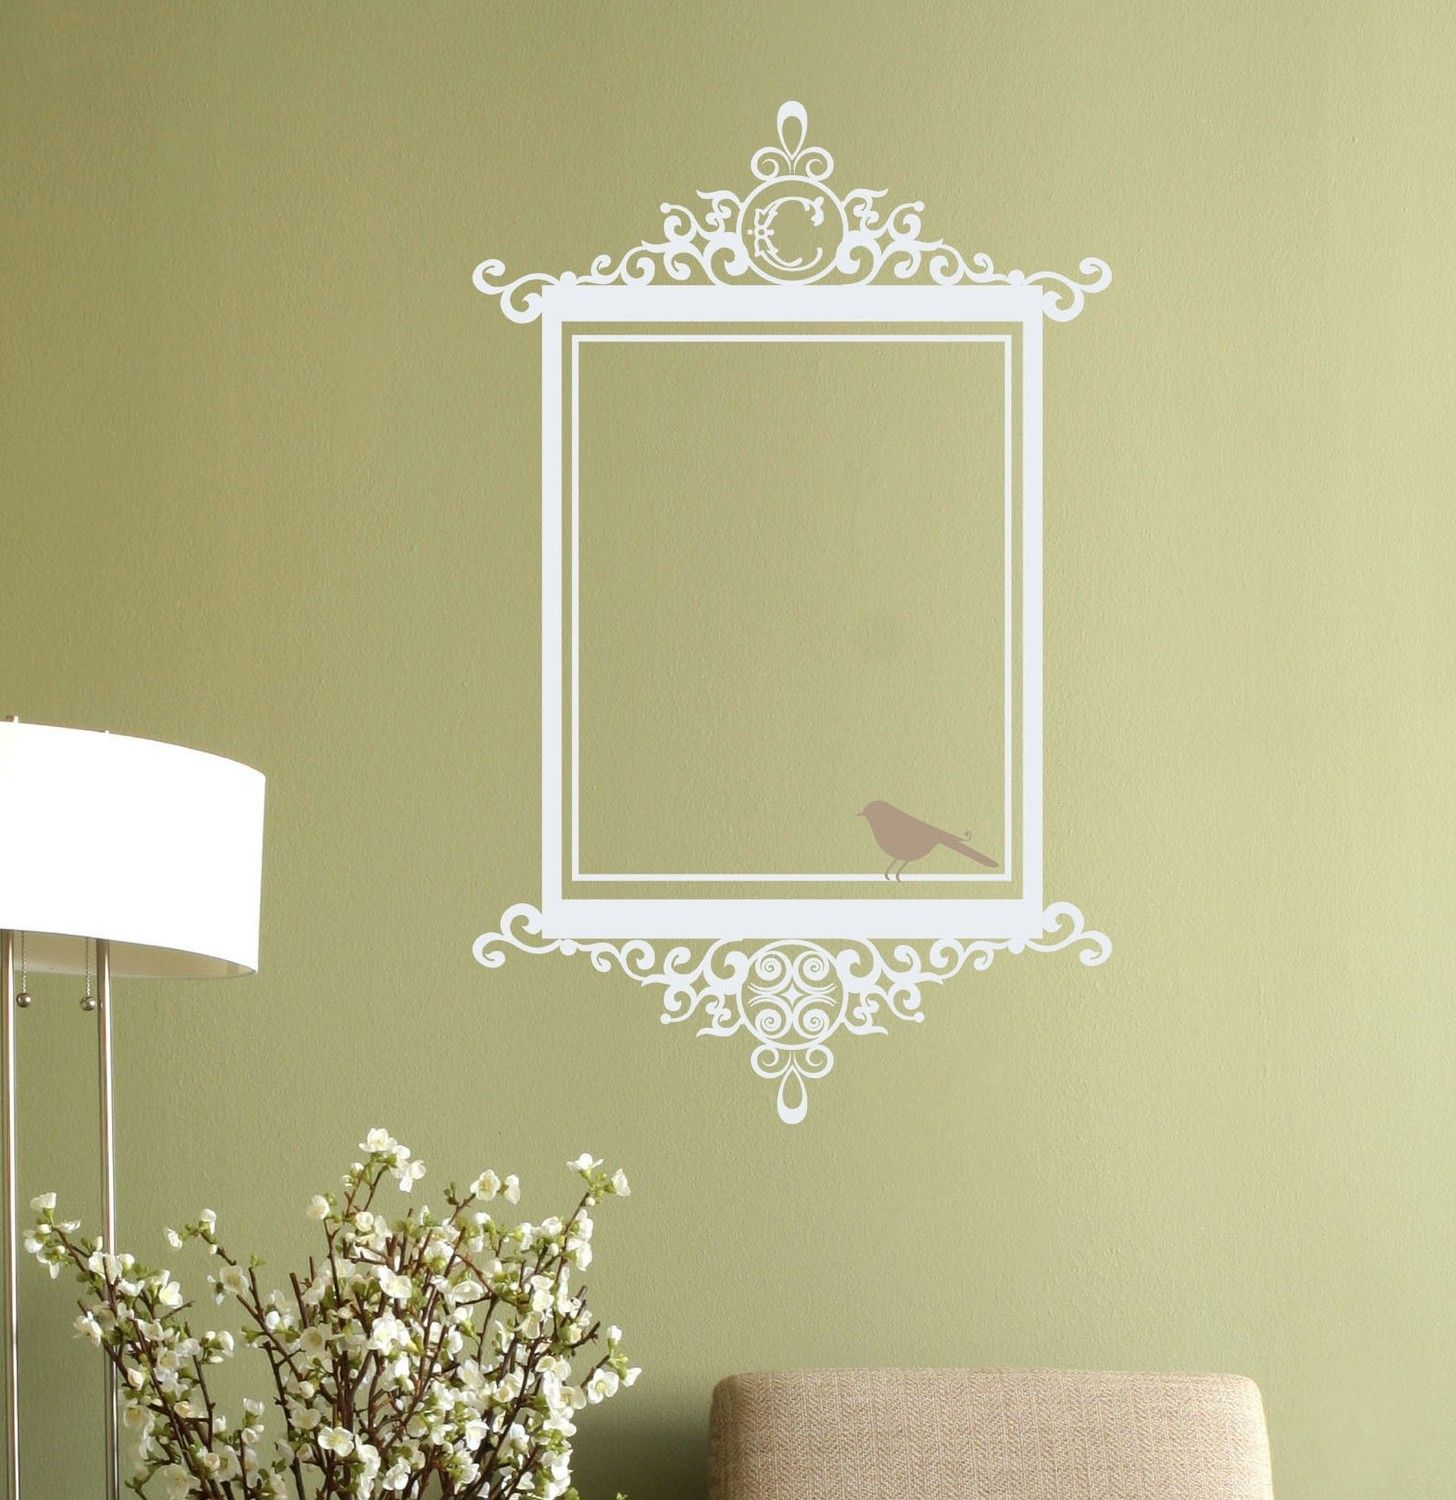 scroll frame decal | Antique Scroll Frame | Art | Pinterest | Wall ...